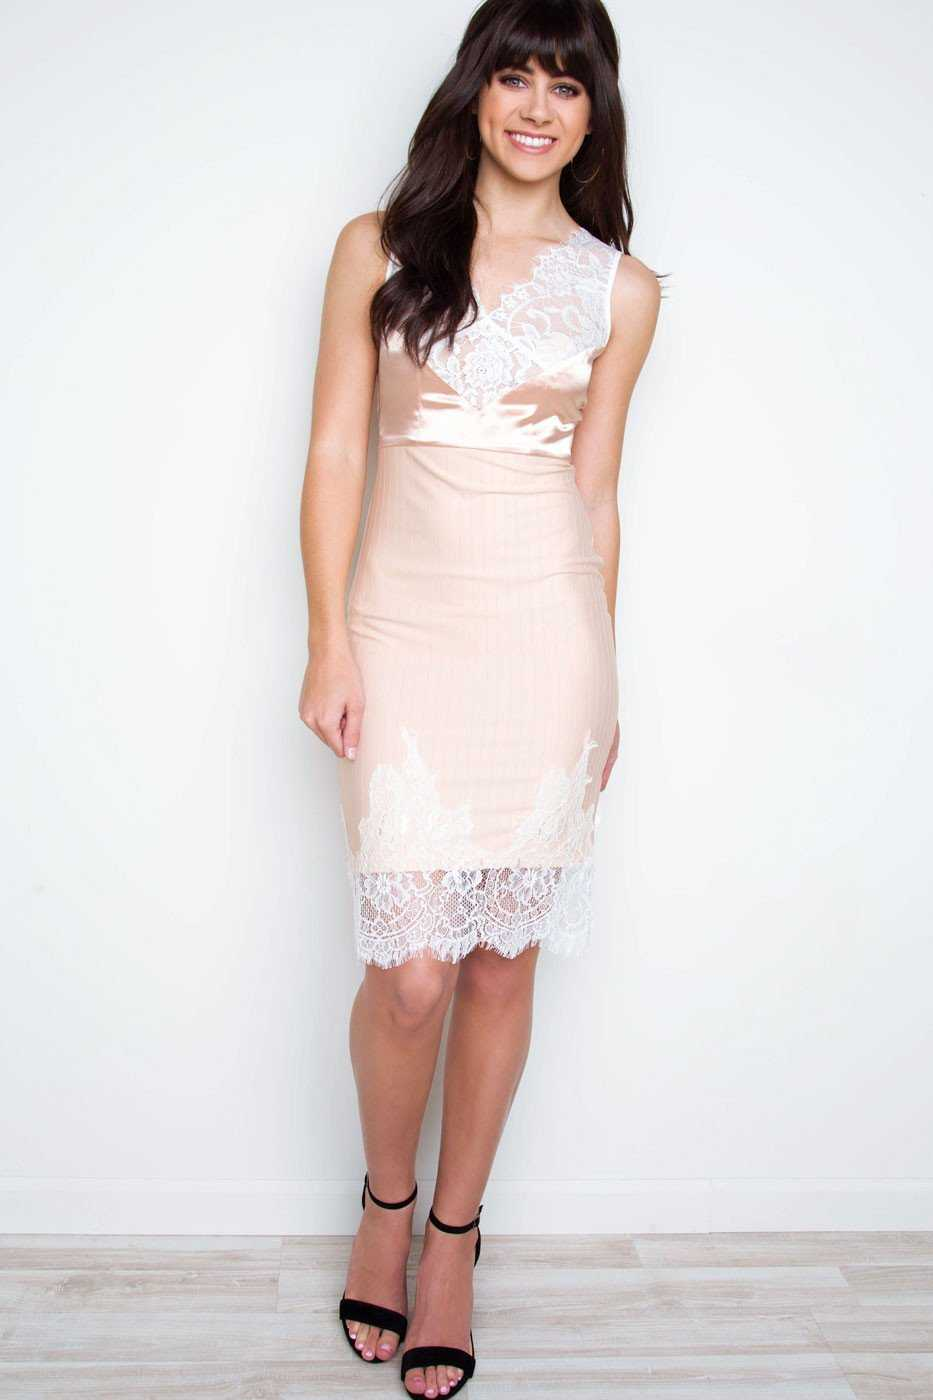 Dresses - C'est La Vie Lace Dress